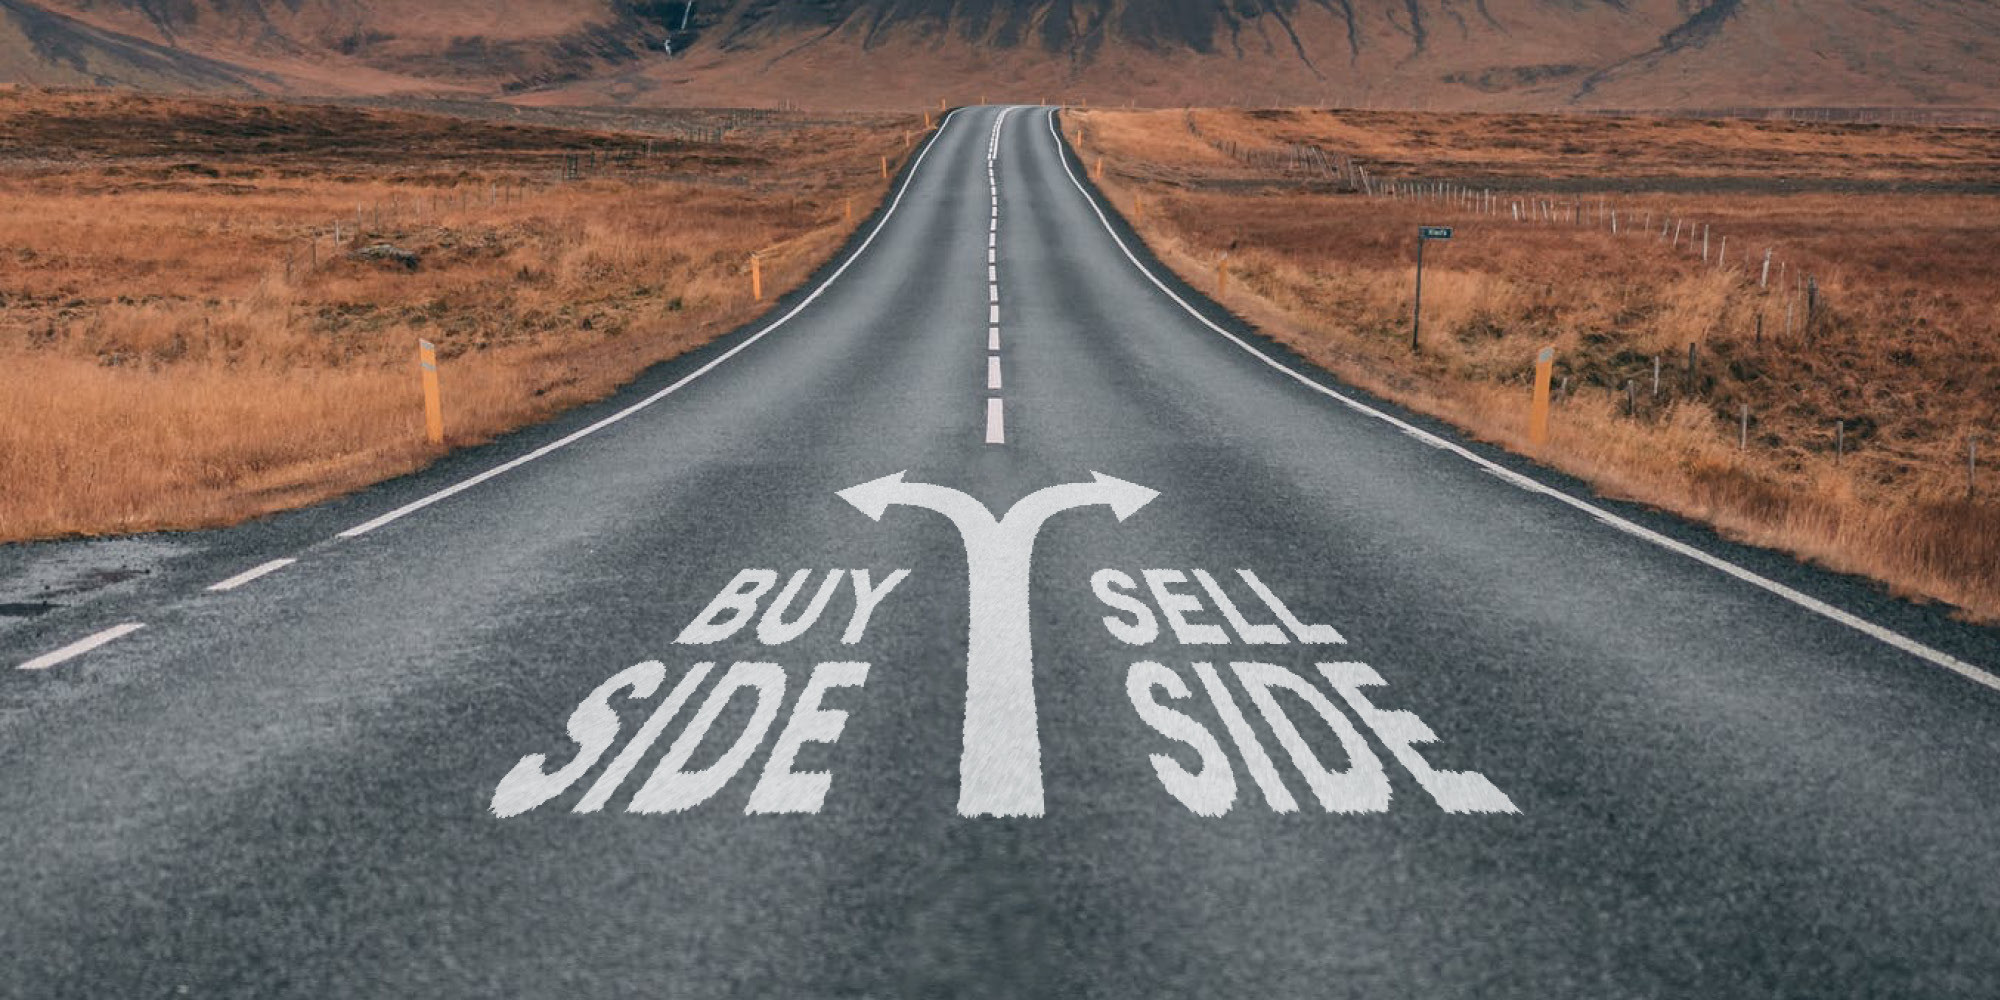 Buyside vs Sellside